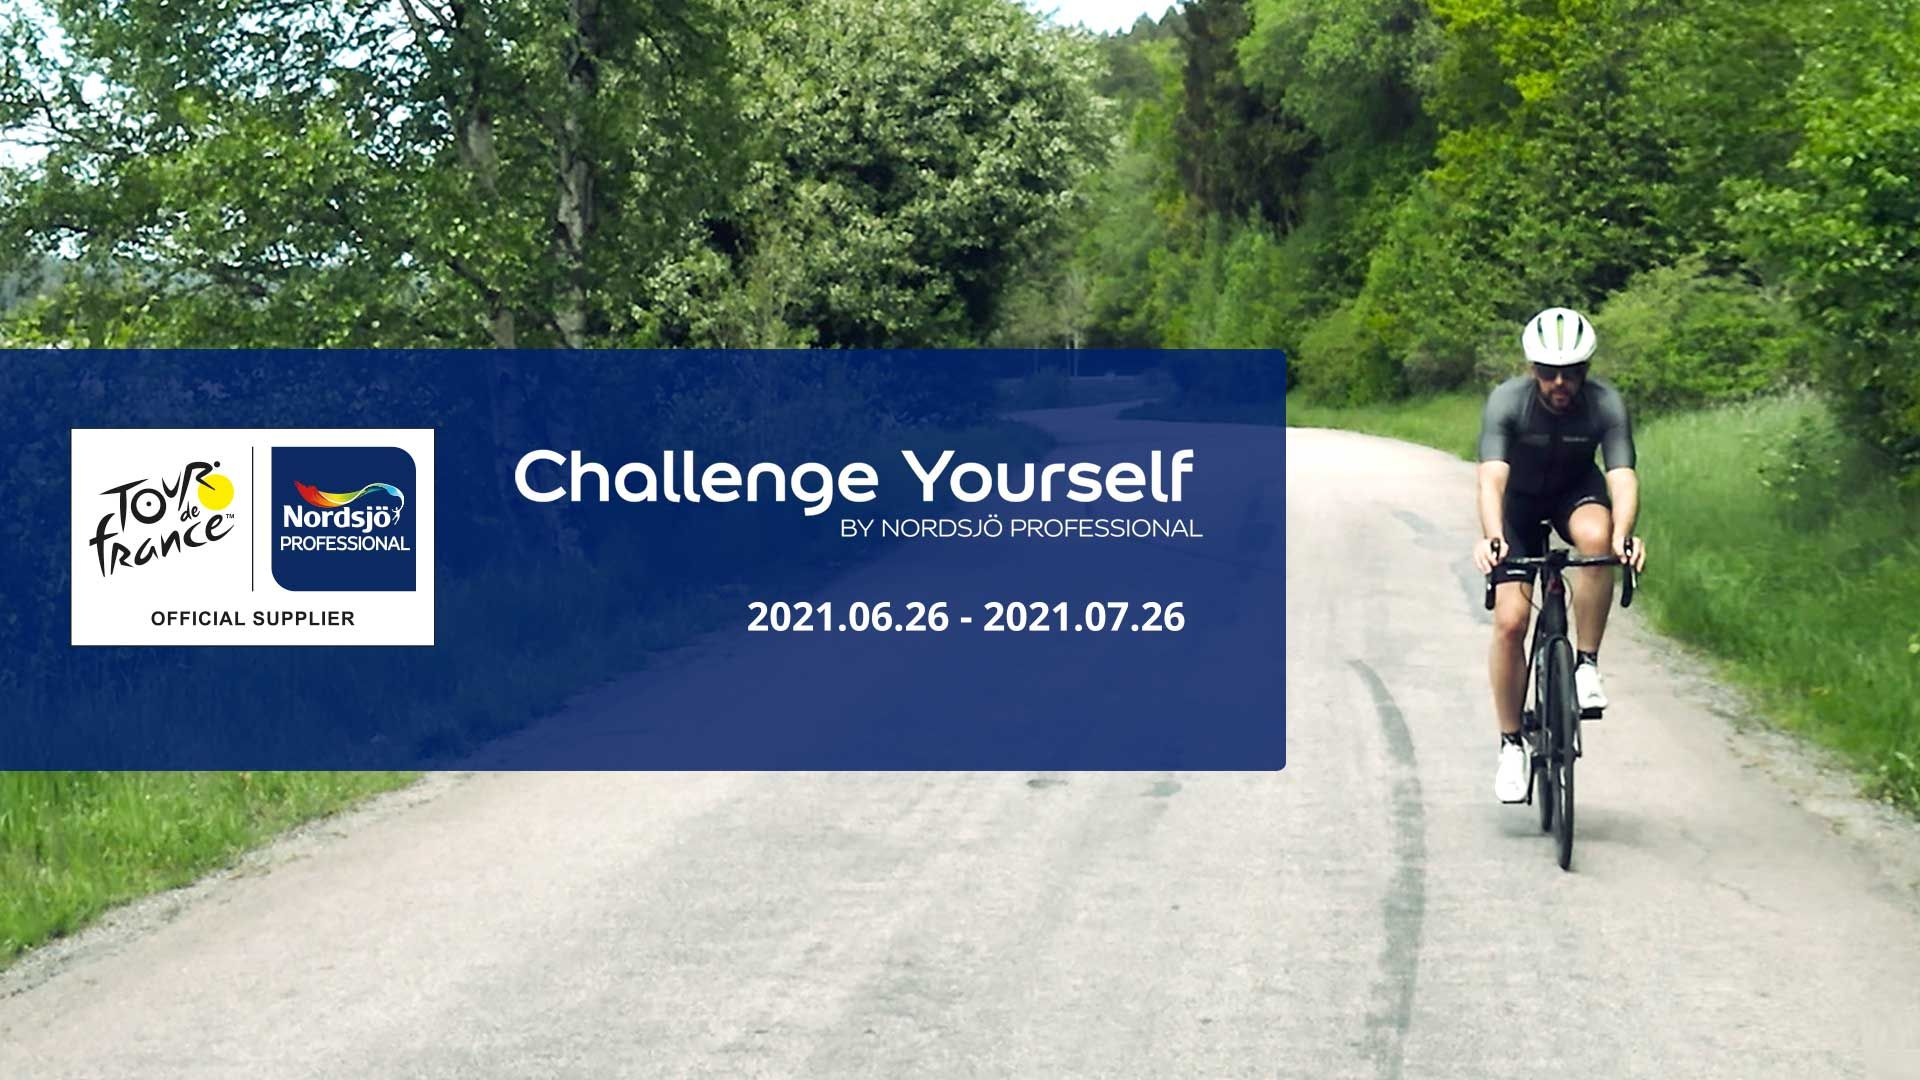 Challenge yourself by Nordsjö Professional 18/7